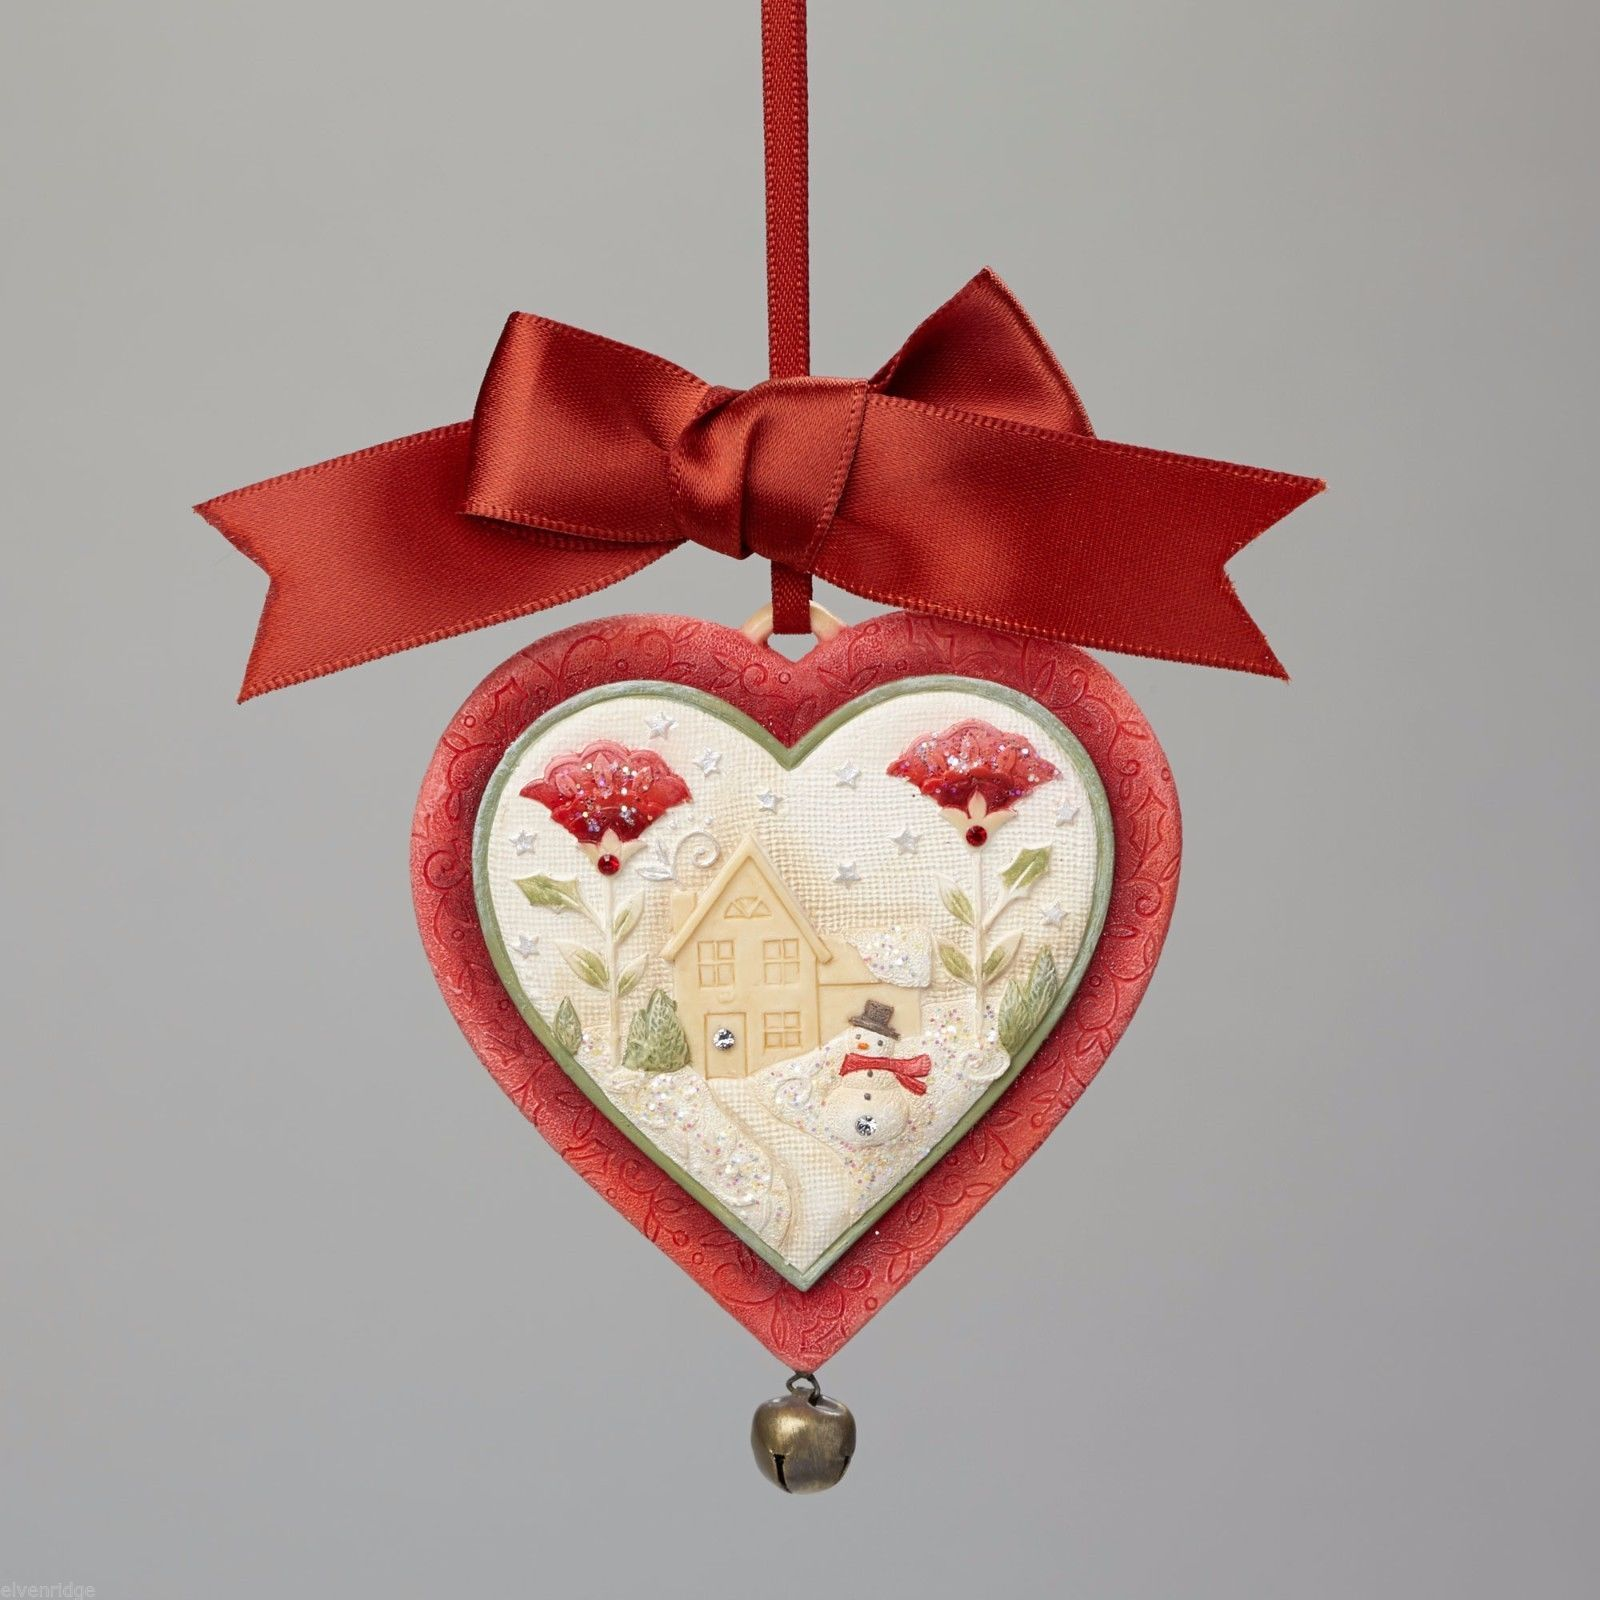 Heart of Christmas hanging ornament  adorable with cozy home scene and card